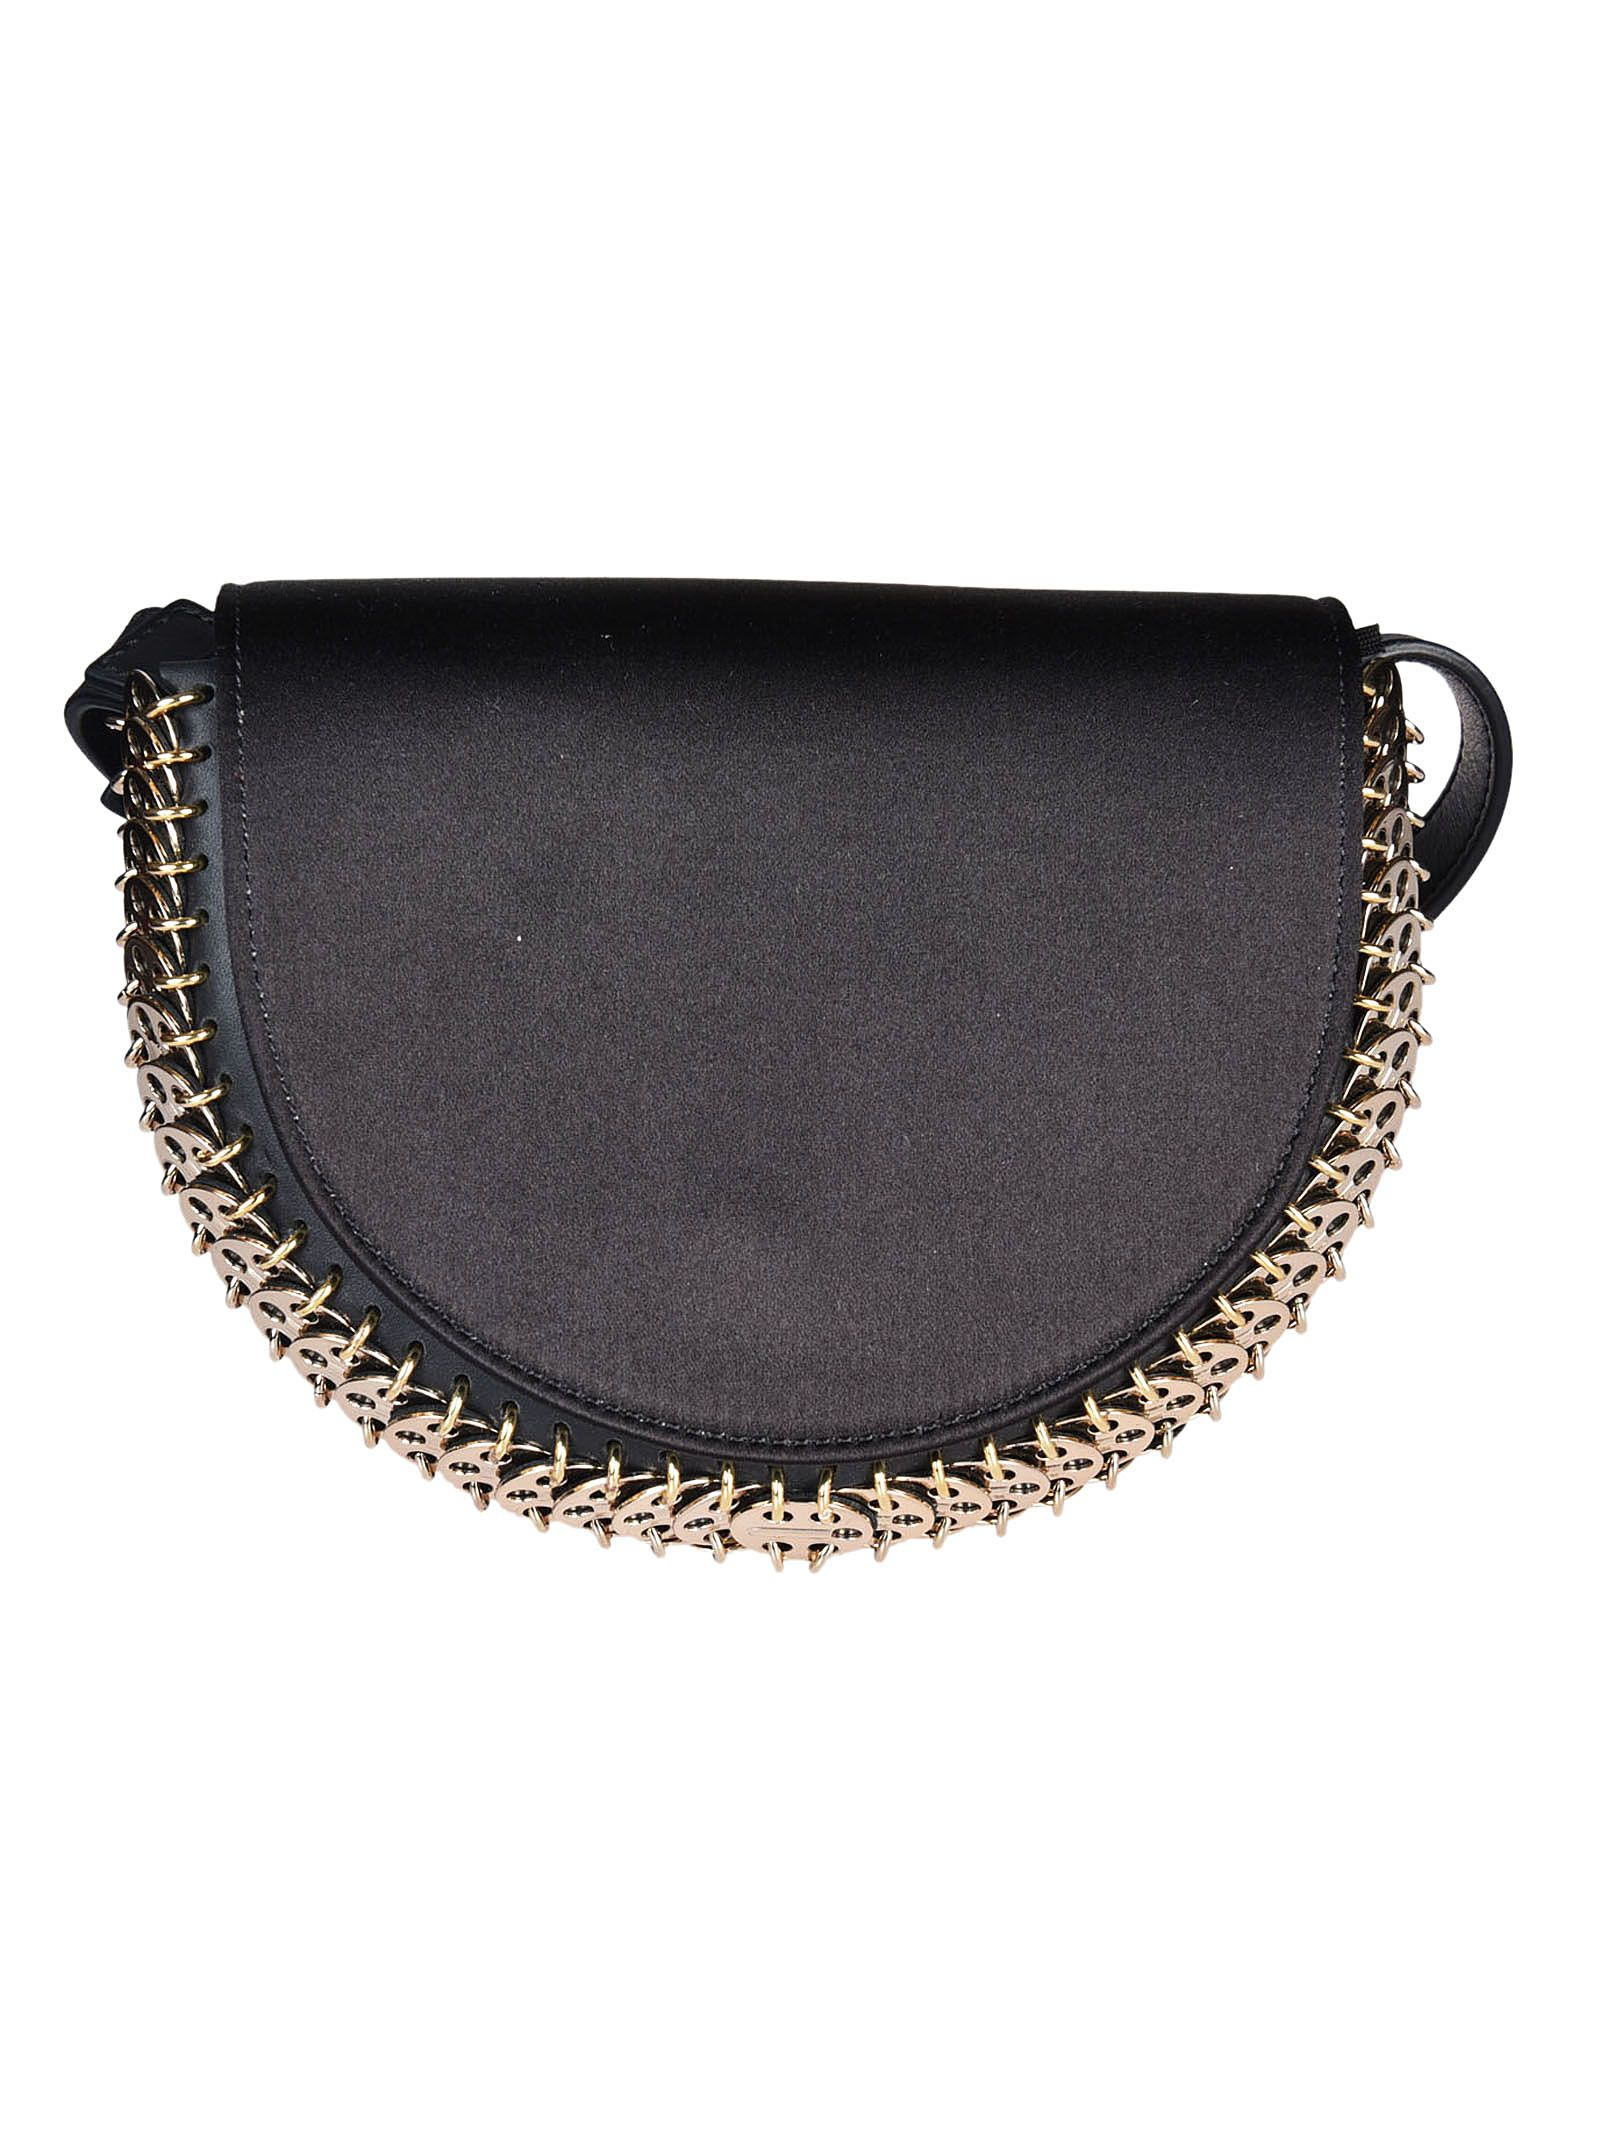 Paco Rabanne Chain Trimmed Shoulder Bag